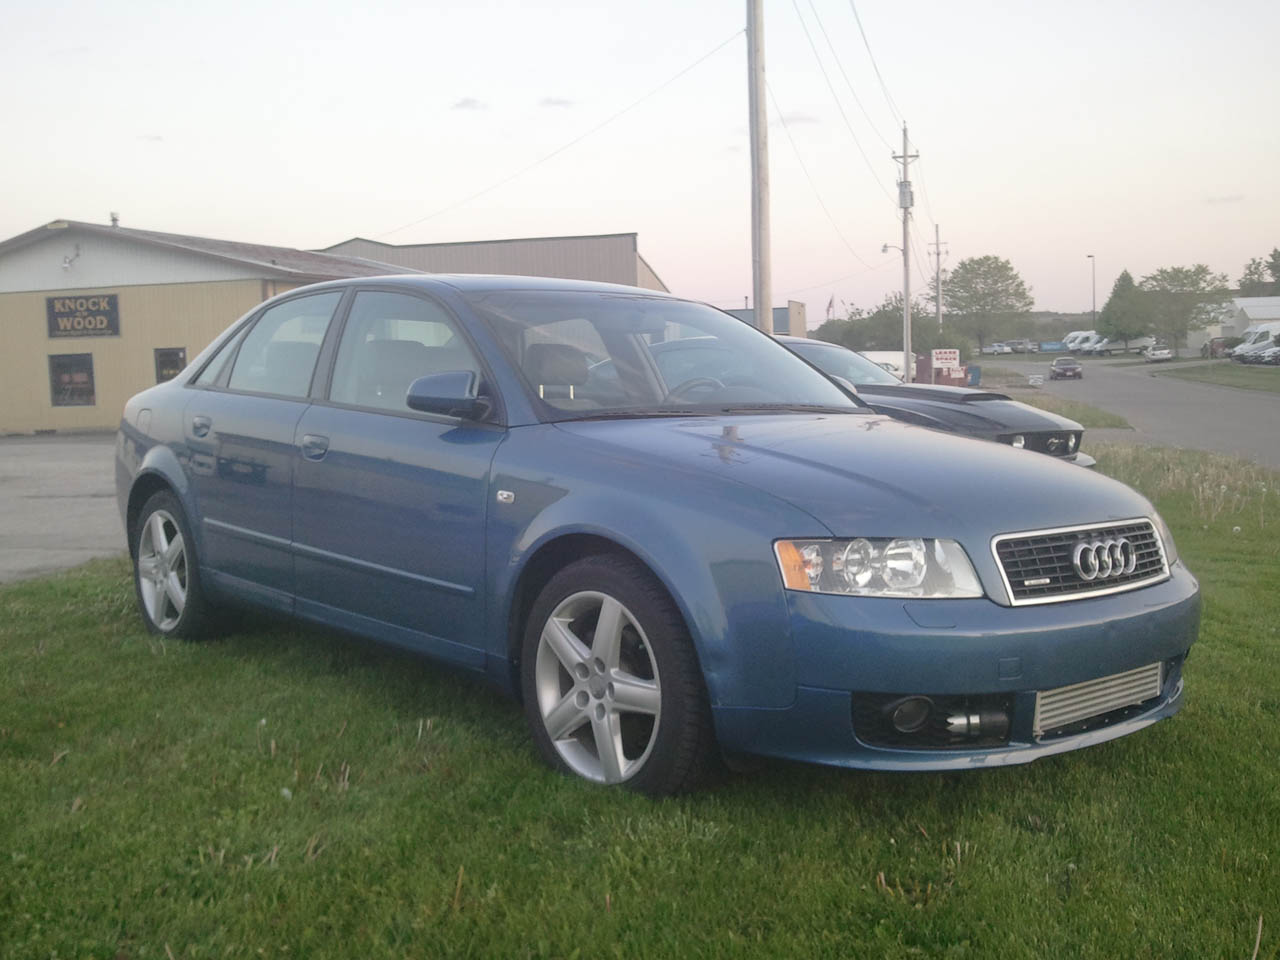 Denim Blue 2003 Audi A4 1.8t Quattro 5spd STOCK K03